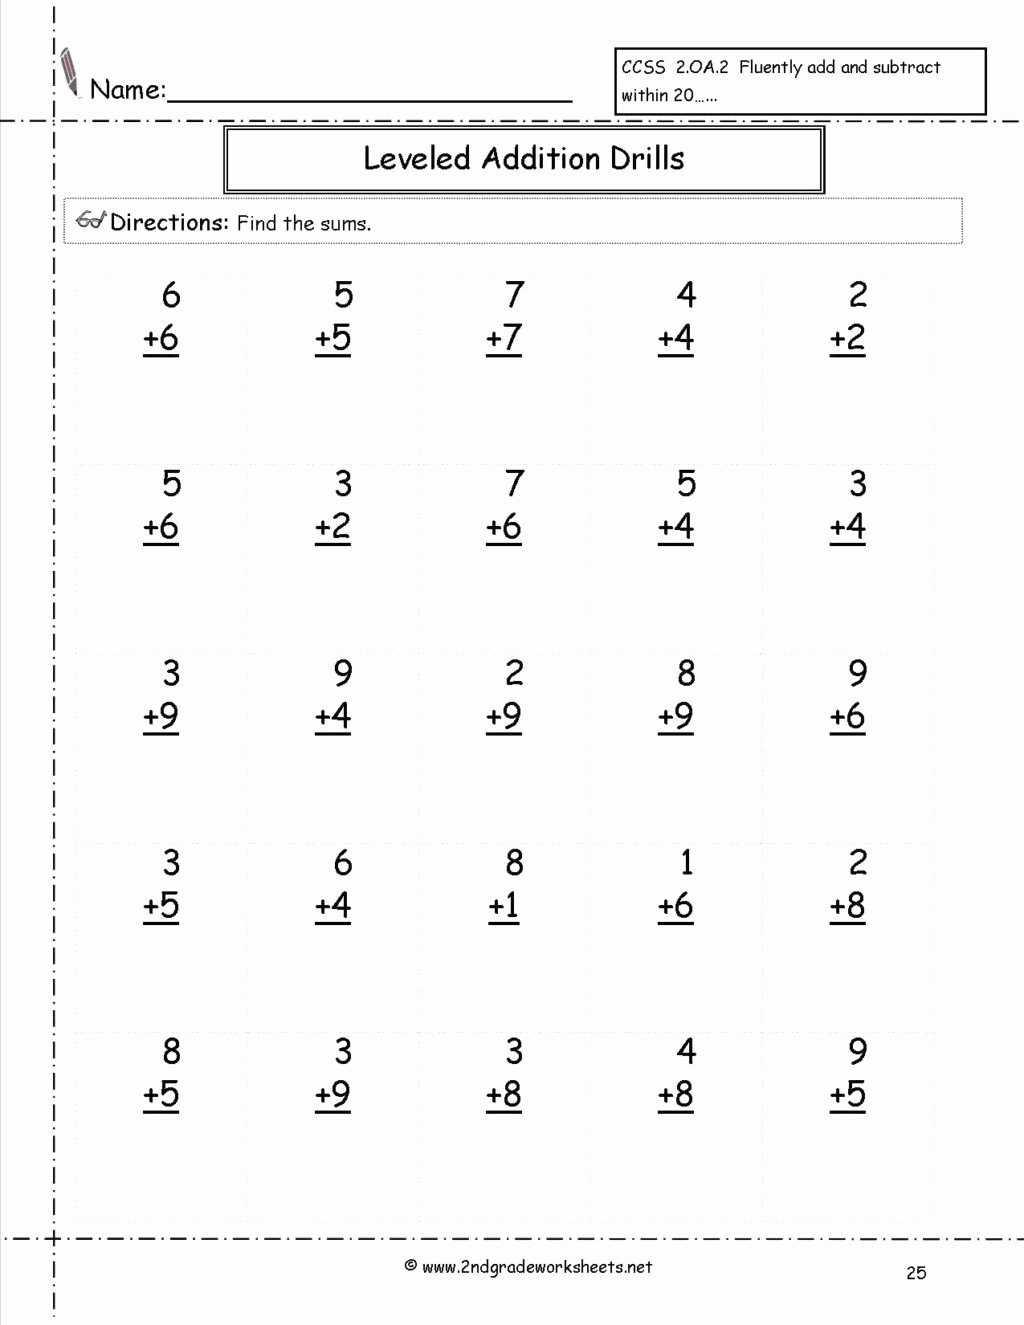 Array Multiplication Worksheets 3rd Grade top Worksheet 3rd Grade Mathheets Multiplication Free Third